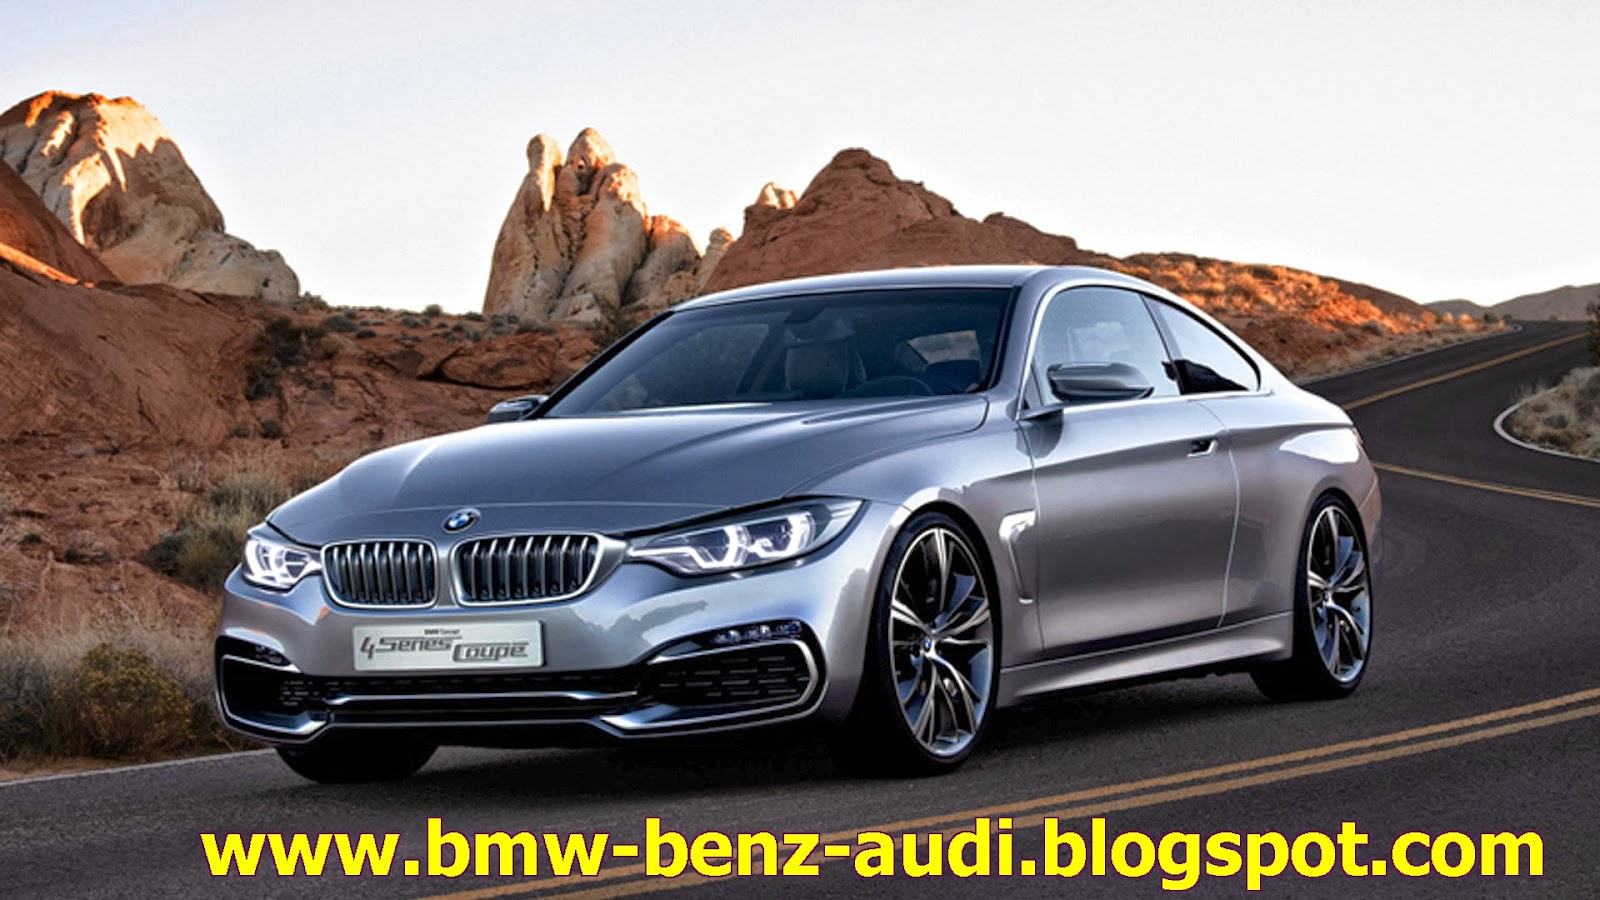 BMW 4 series 418d 2013 photo - 10